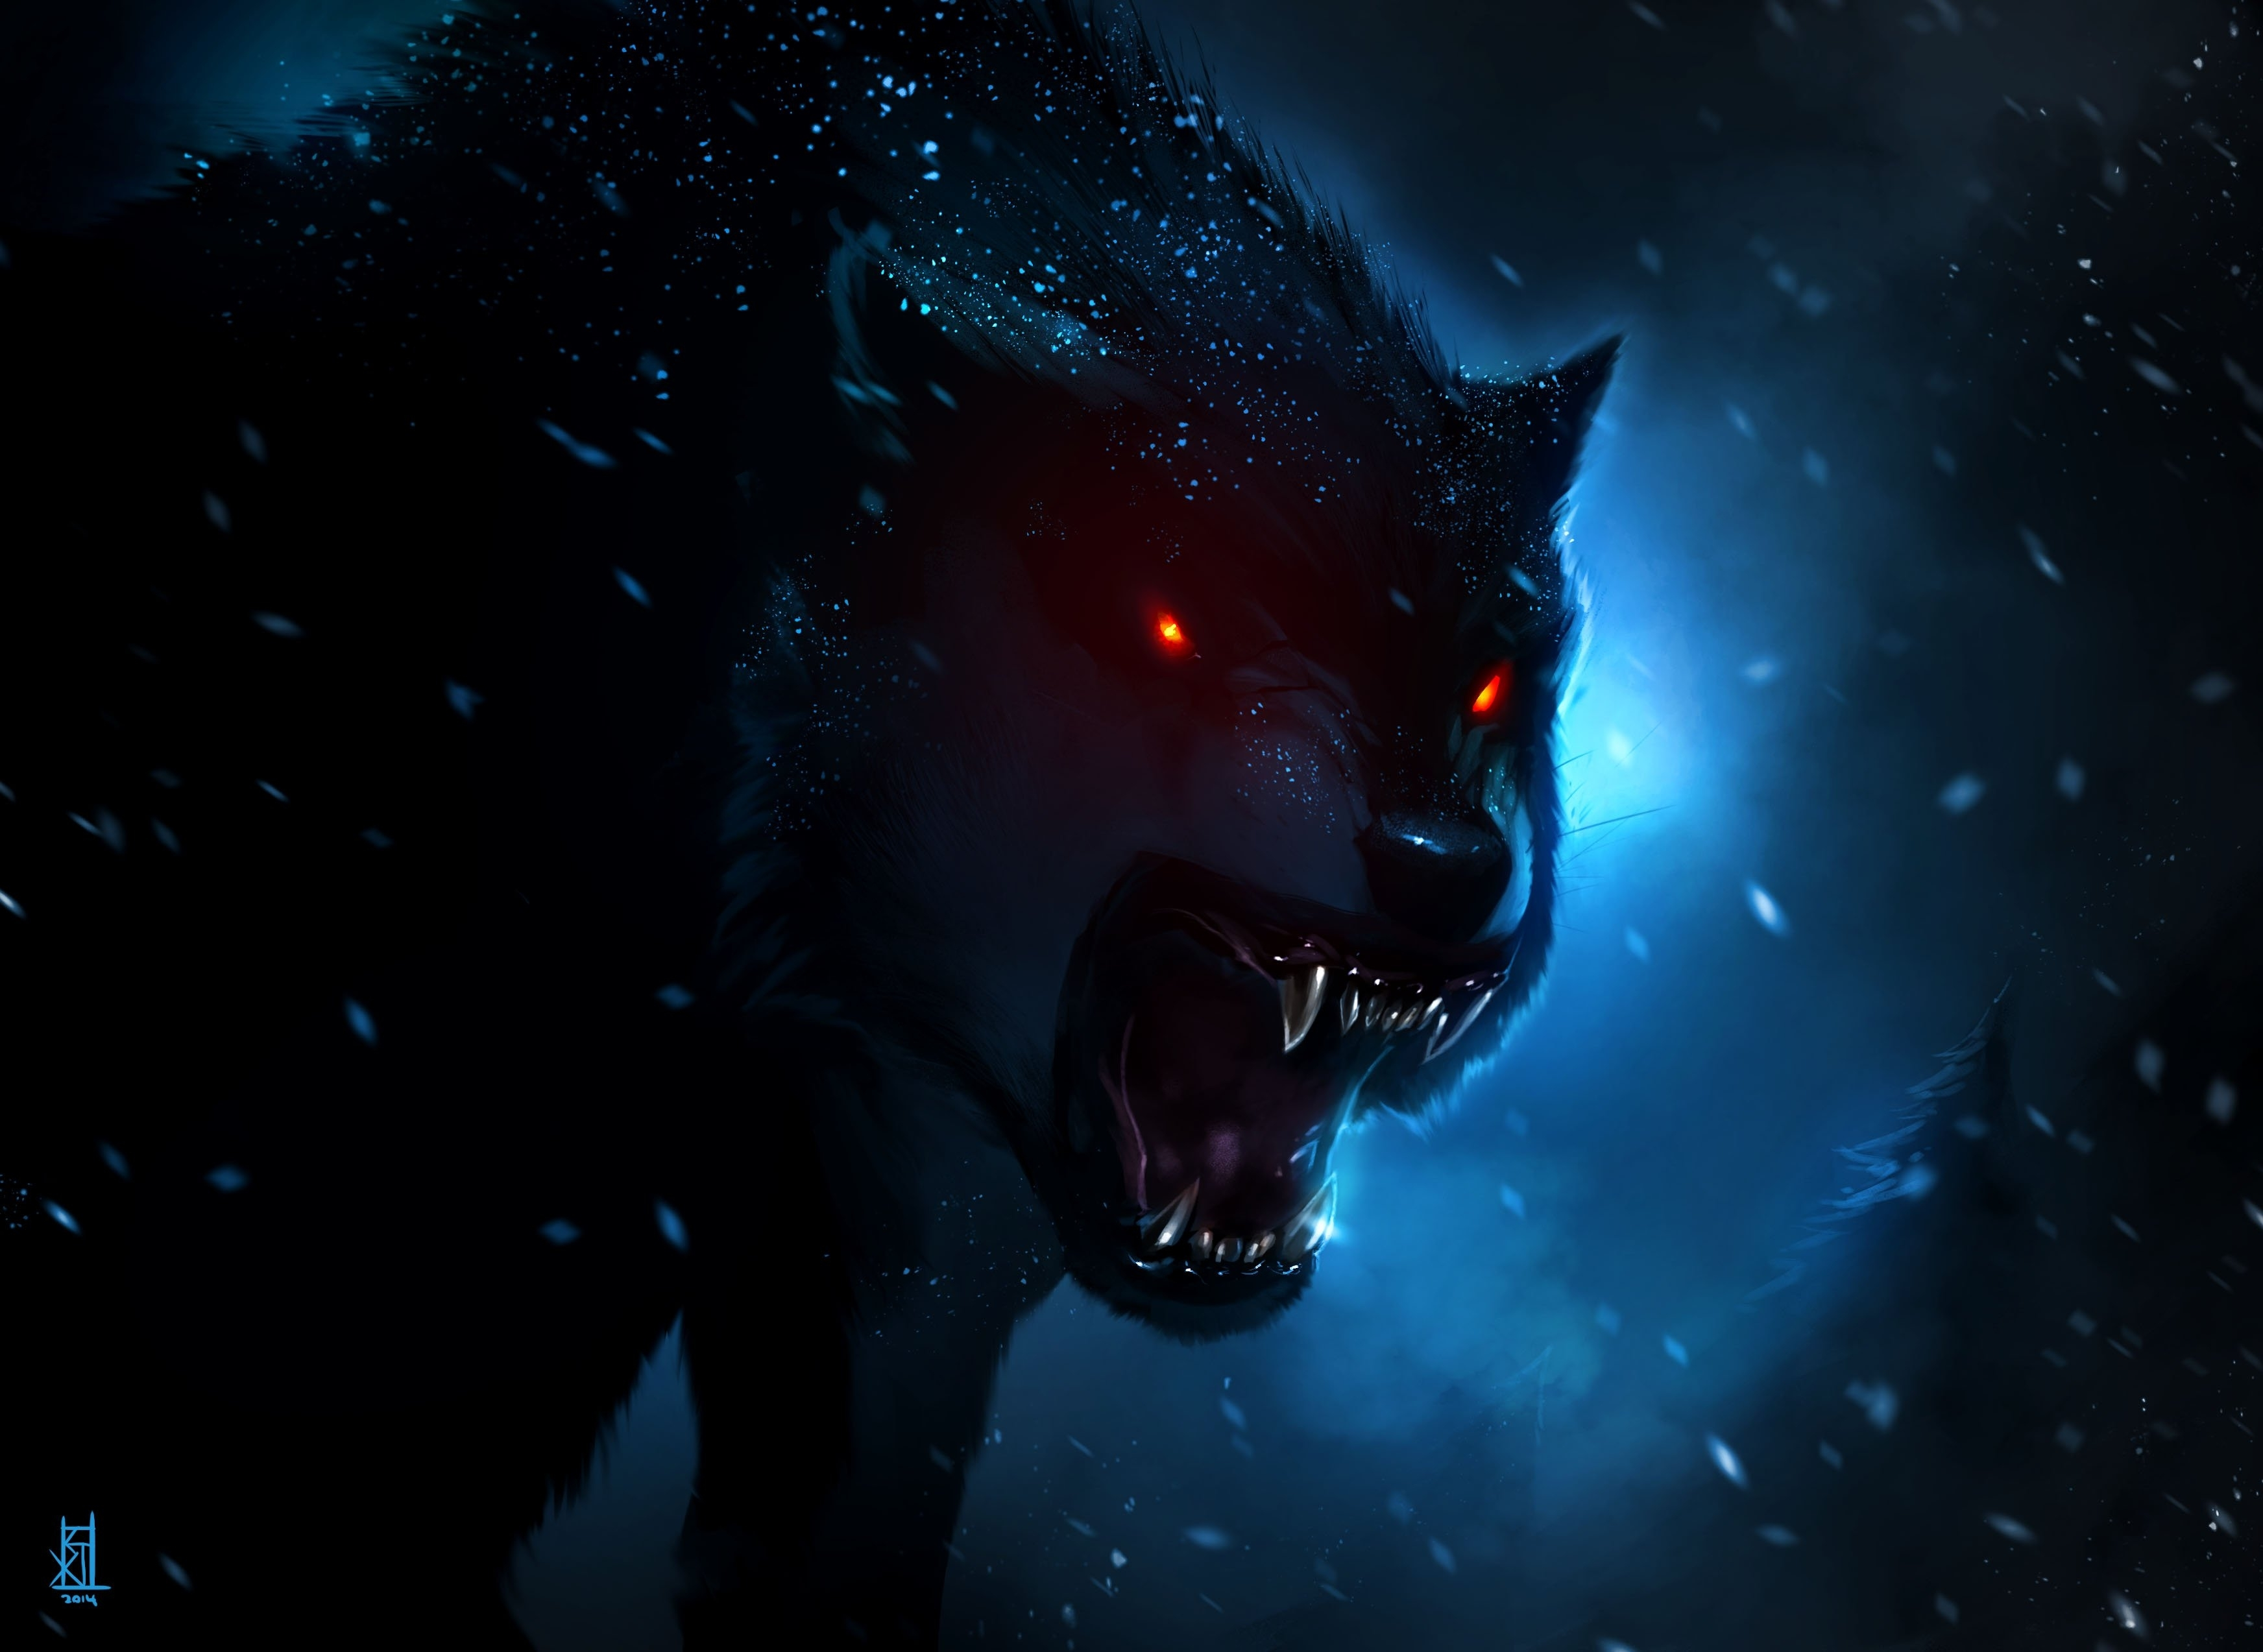 wolf fantasy animal red eyes dark wallpaper | 3488x2547 | 901159